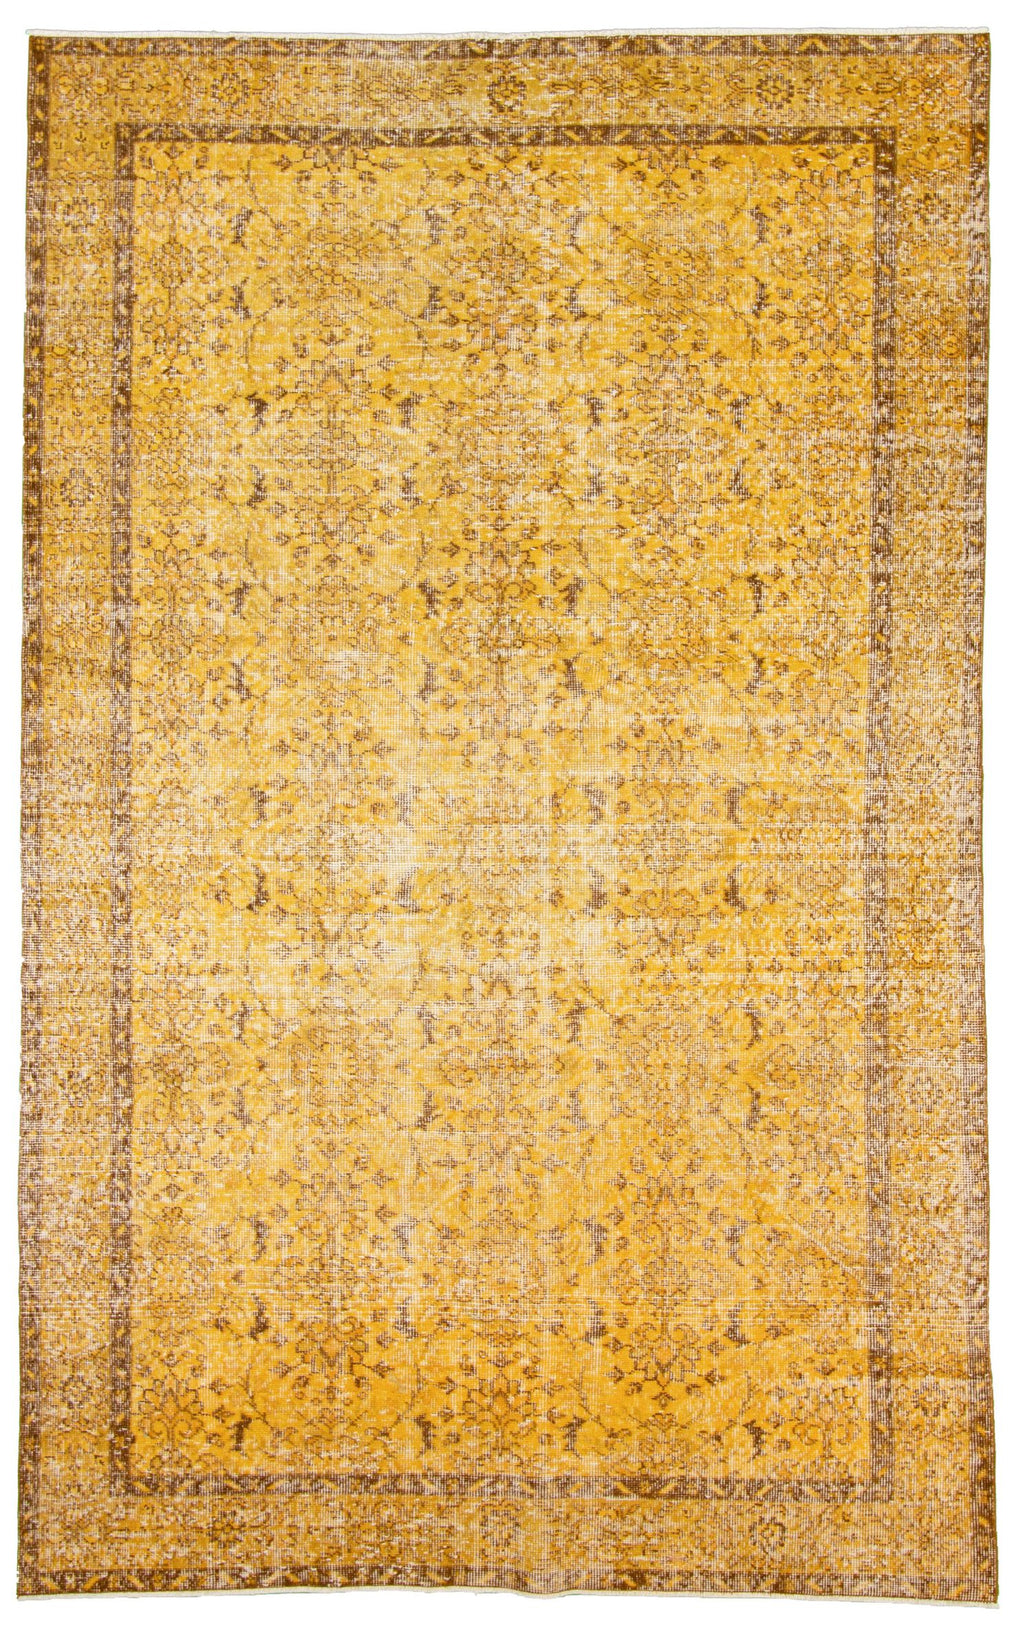 "Hand Knotted Turkish Overdyed Rug, 5'7"" x 9'1"""